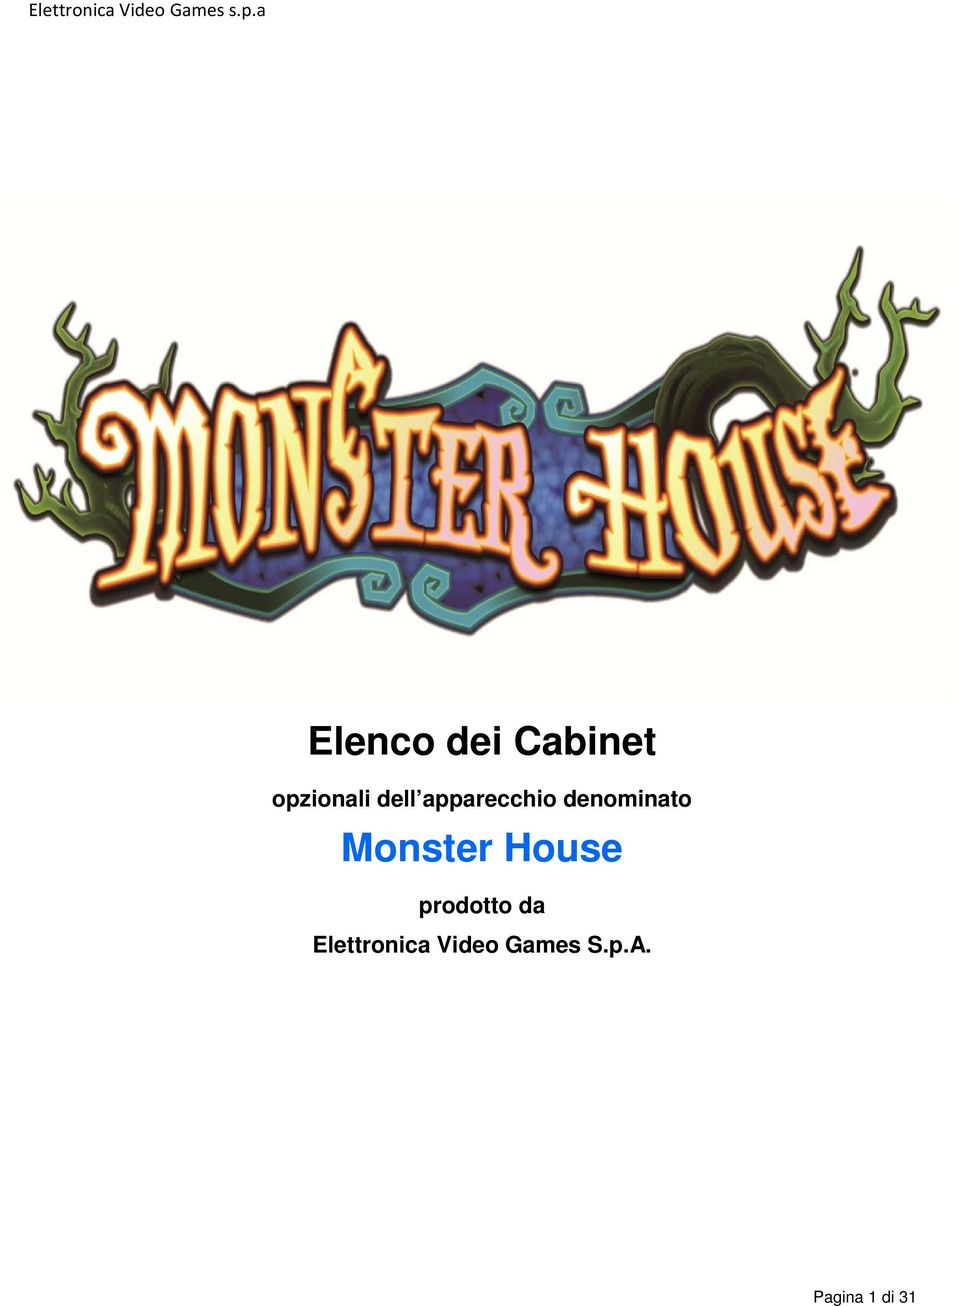 Monster House prodotto da